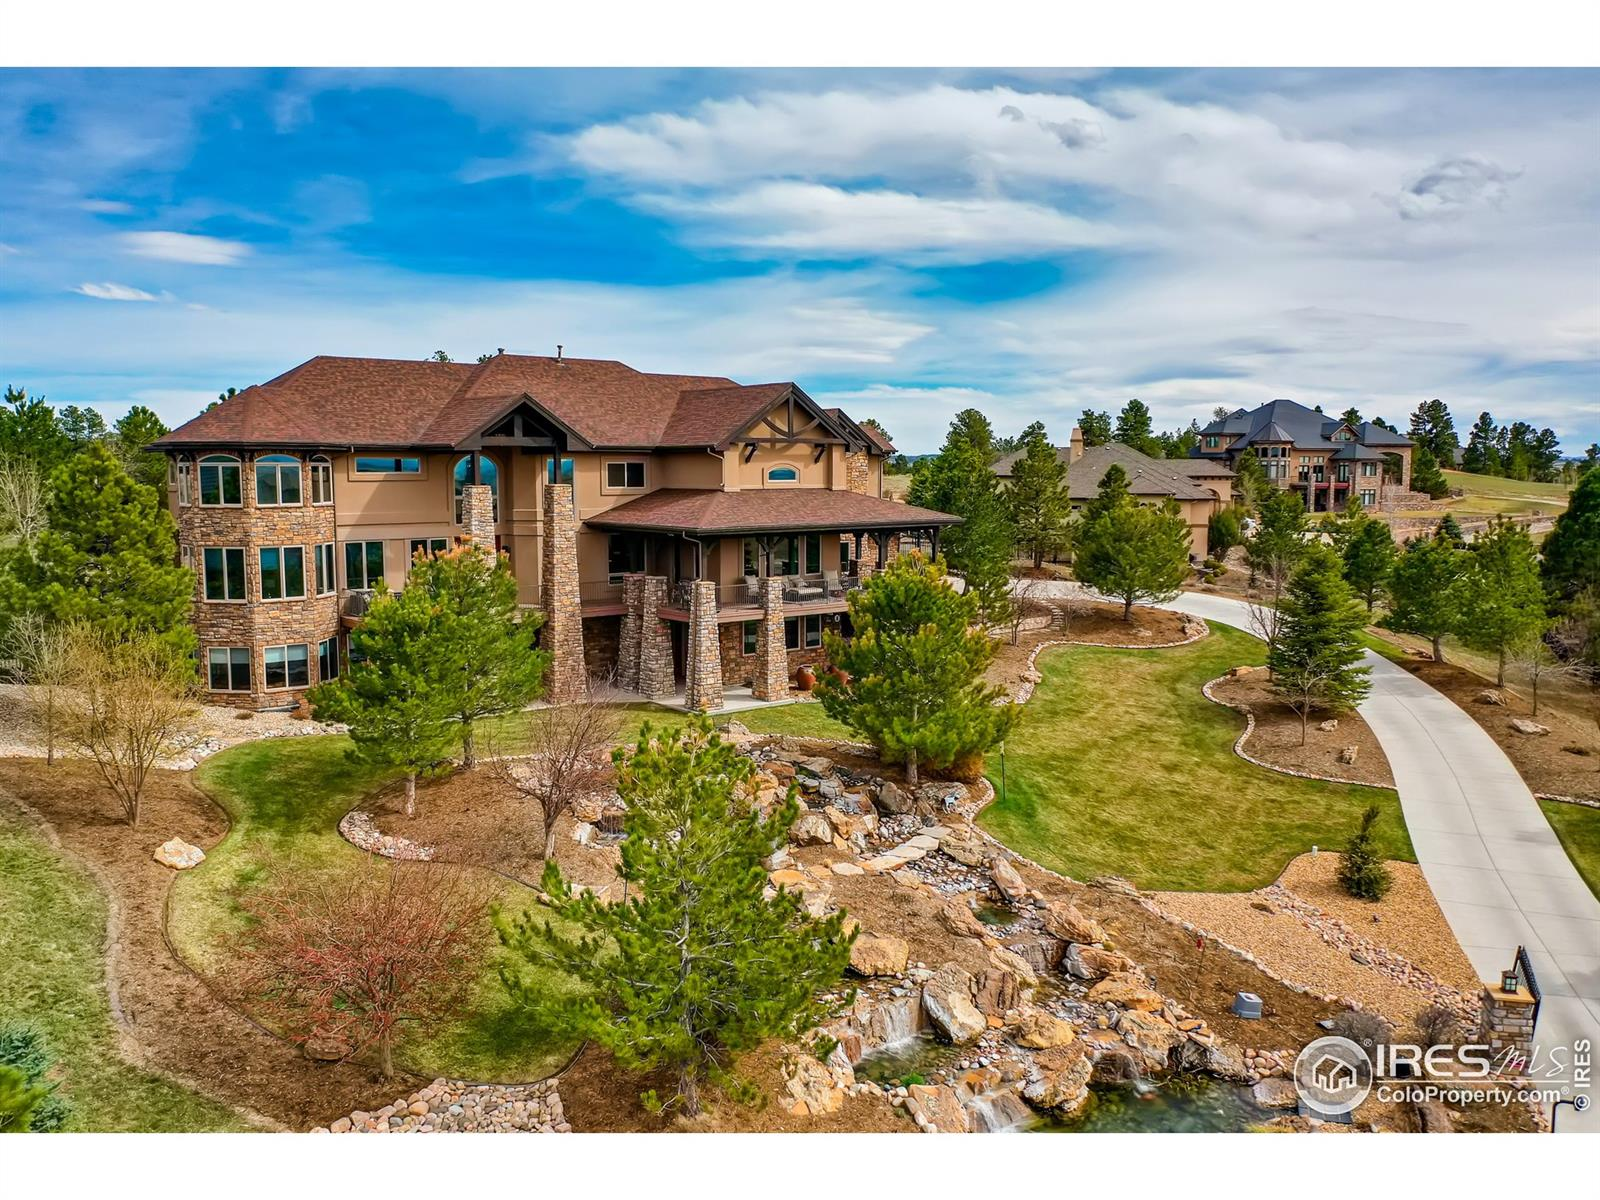 "Colorado luxury defined with extraordinary architectural details and magnificent mountain views from all three levels. Located in a quiet cul-de-sac in the heart of the exclusive Timbers at the Pinery neighborhood; this outdoor oasis sits atop an elevated 1.49 acre lot with an impressive cascading water feature, whispering pines, & in-ground hot tub with water fall. The kitchen, breakfast room, & great room create the heart & soul of the home. Gorgeous Great Room w/ striking stone fireplace ascending to the timber-trussed ceiling & custom built-in's. Upper level features a generous master retreat w/ spectacular mtn views, luxury sitting area, fireplace for romantic evenings, elegant 5-piece master bath. The show-stopping walkout level boasts a Family room w/ stone fireplace, Game Room w/ built-in leather couch, retractable TV, & aquarium, Media Room w/ 8 person stadium seating, 120"" screen, & surround sound, Wine Cellar w/ wood barrel ceiling featured in Architectural Digest."